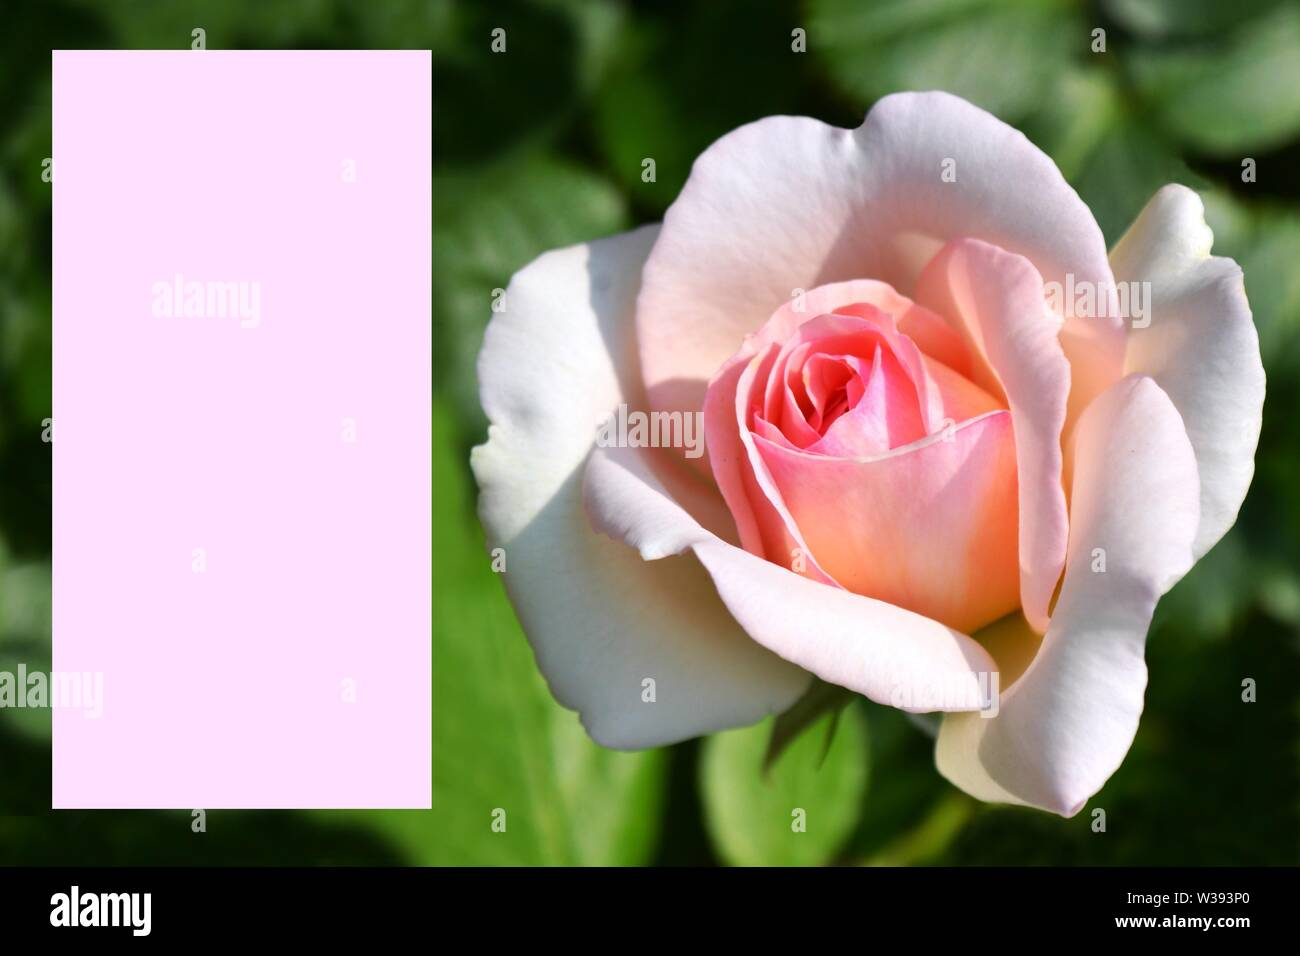 Greeting card with pink rose image on the right side on green background and pink frame for writing. Stock Photo